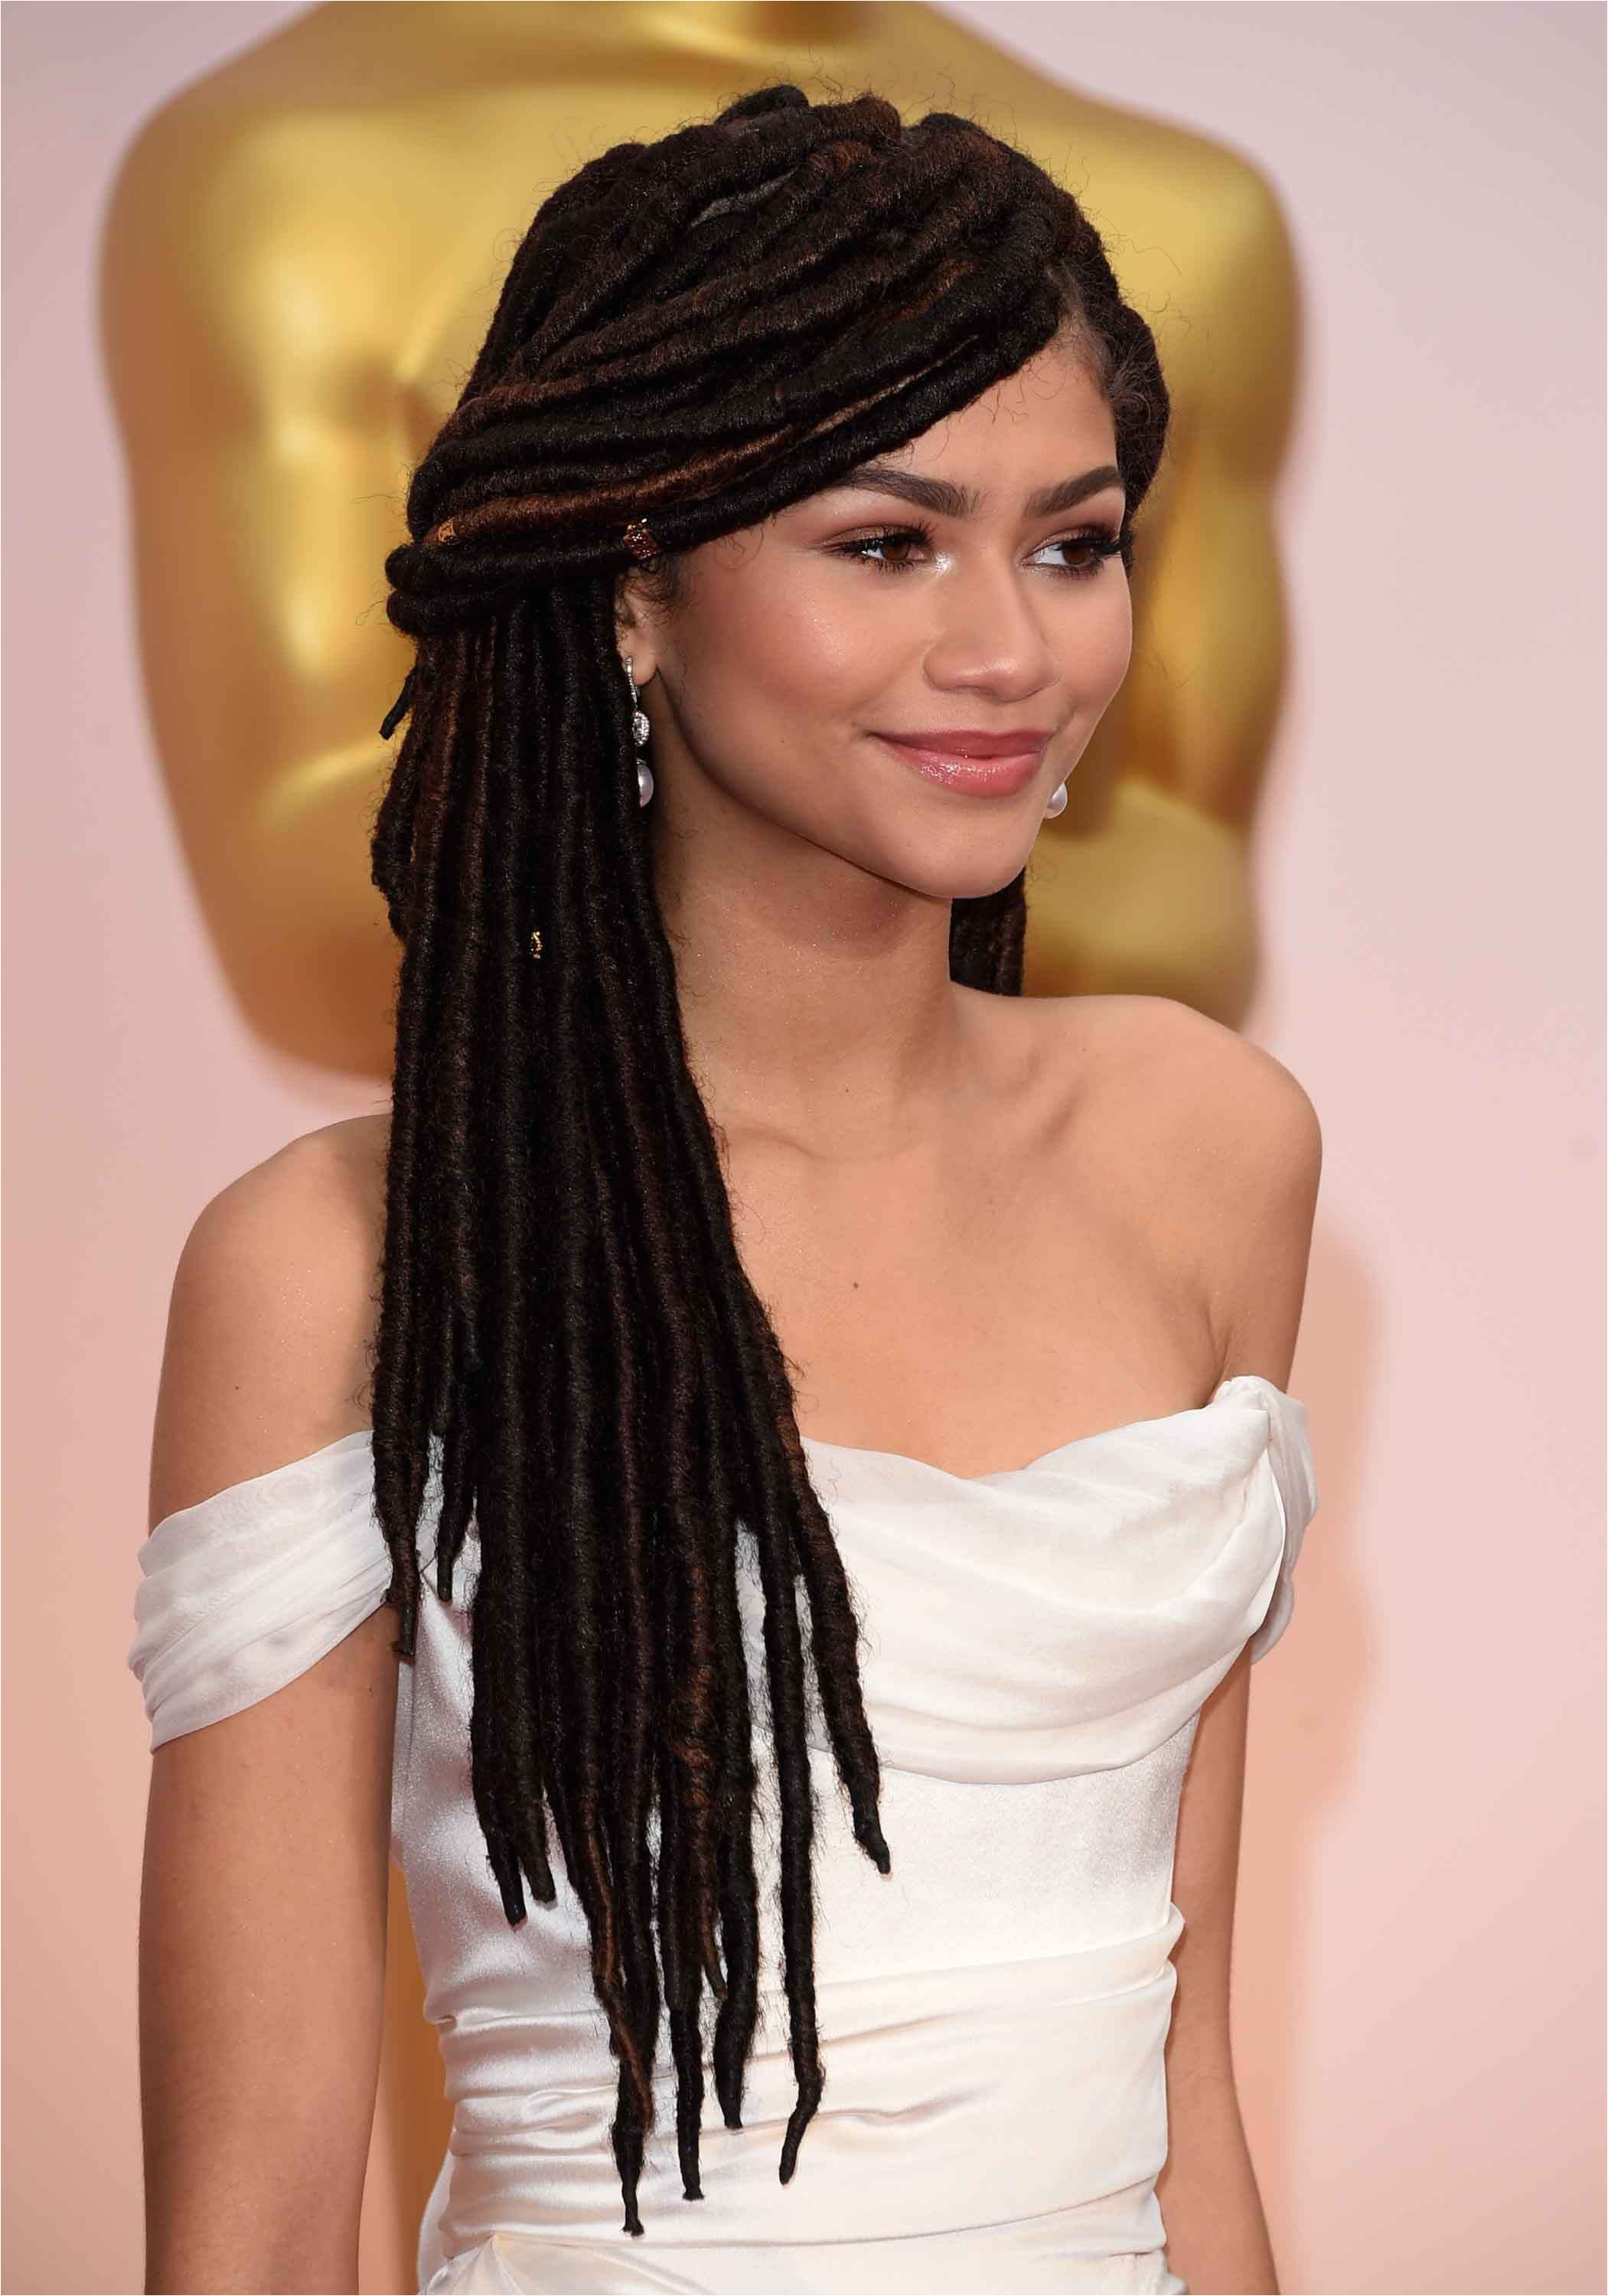 Get the ideas and tips to make Dreadlocks and Hairstyle For Women Dreads is one of the most popular styles and ting dreadlocks is a lengthy process